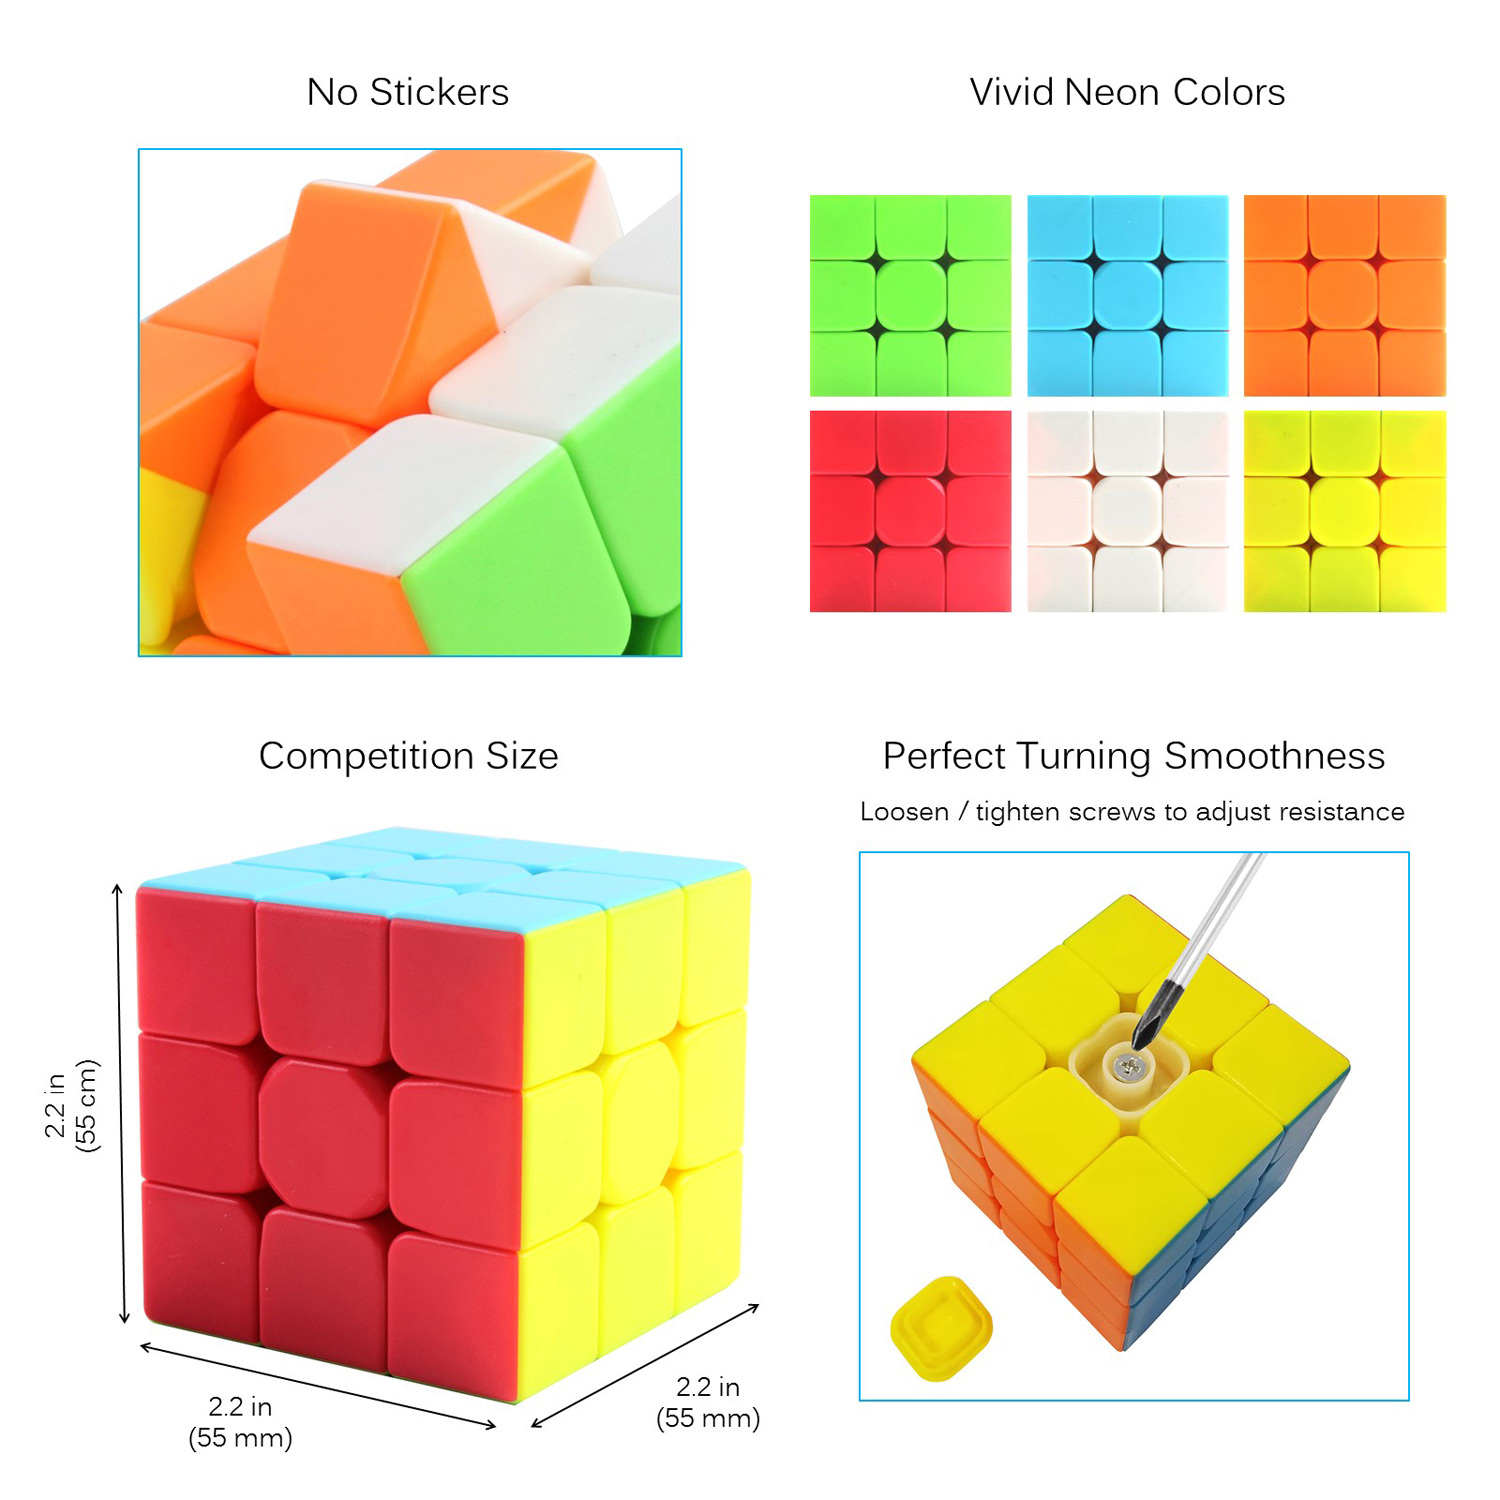 Speed Cube Turns Quick Rubiks Smooth Play Rubix Solid Durable Stickerless Smart Gaming Puzzle Modern Colors IQ Tester Magic Anti Stress Anti-anxiety Adults Kids Brain Teaser Toy